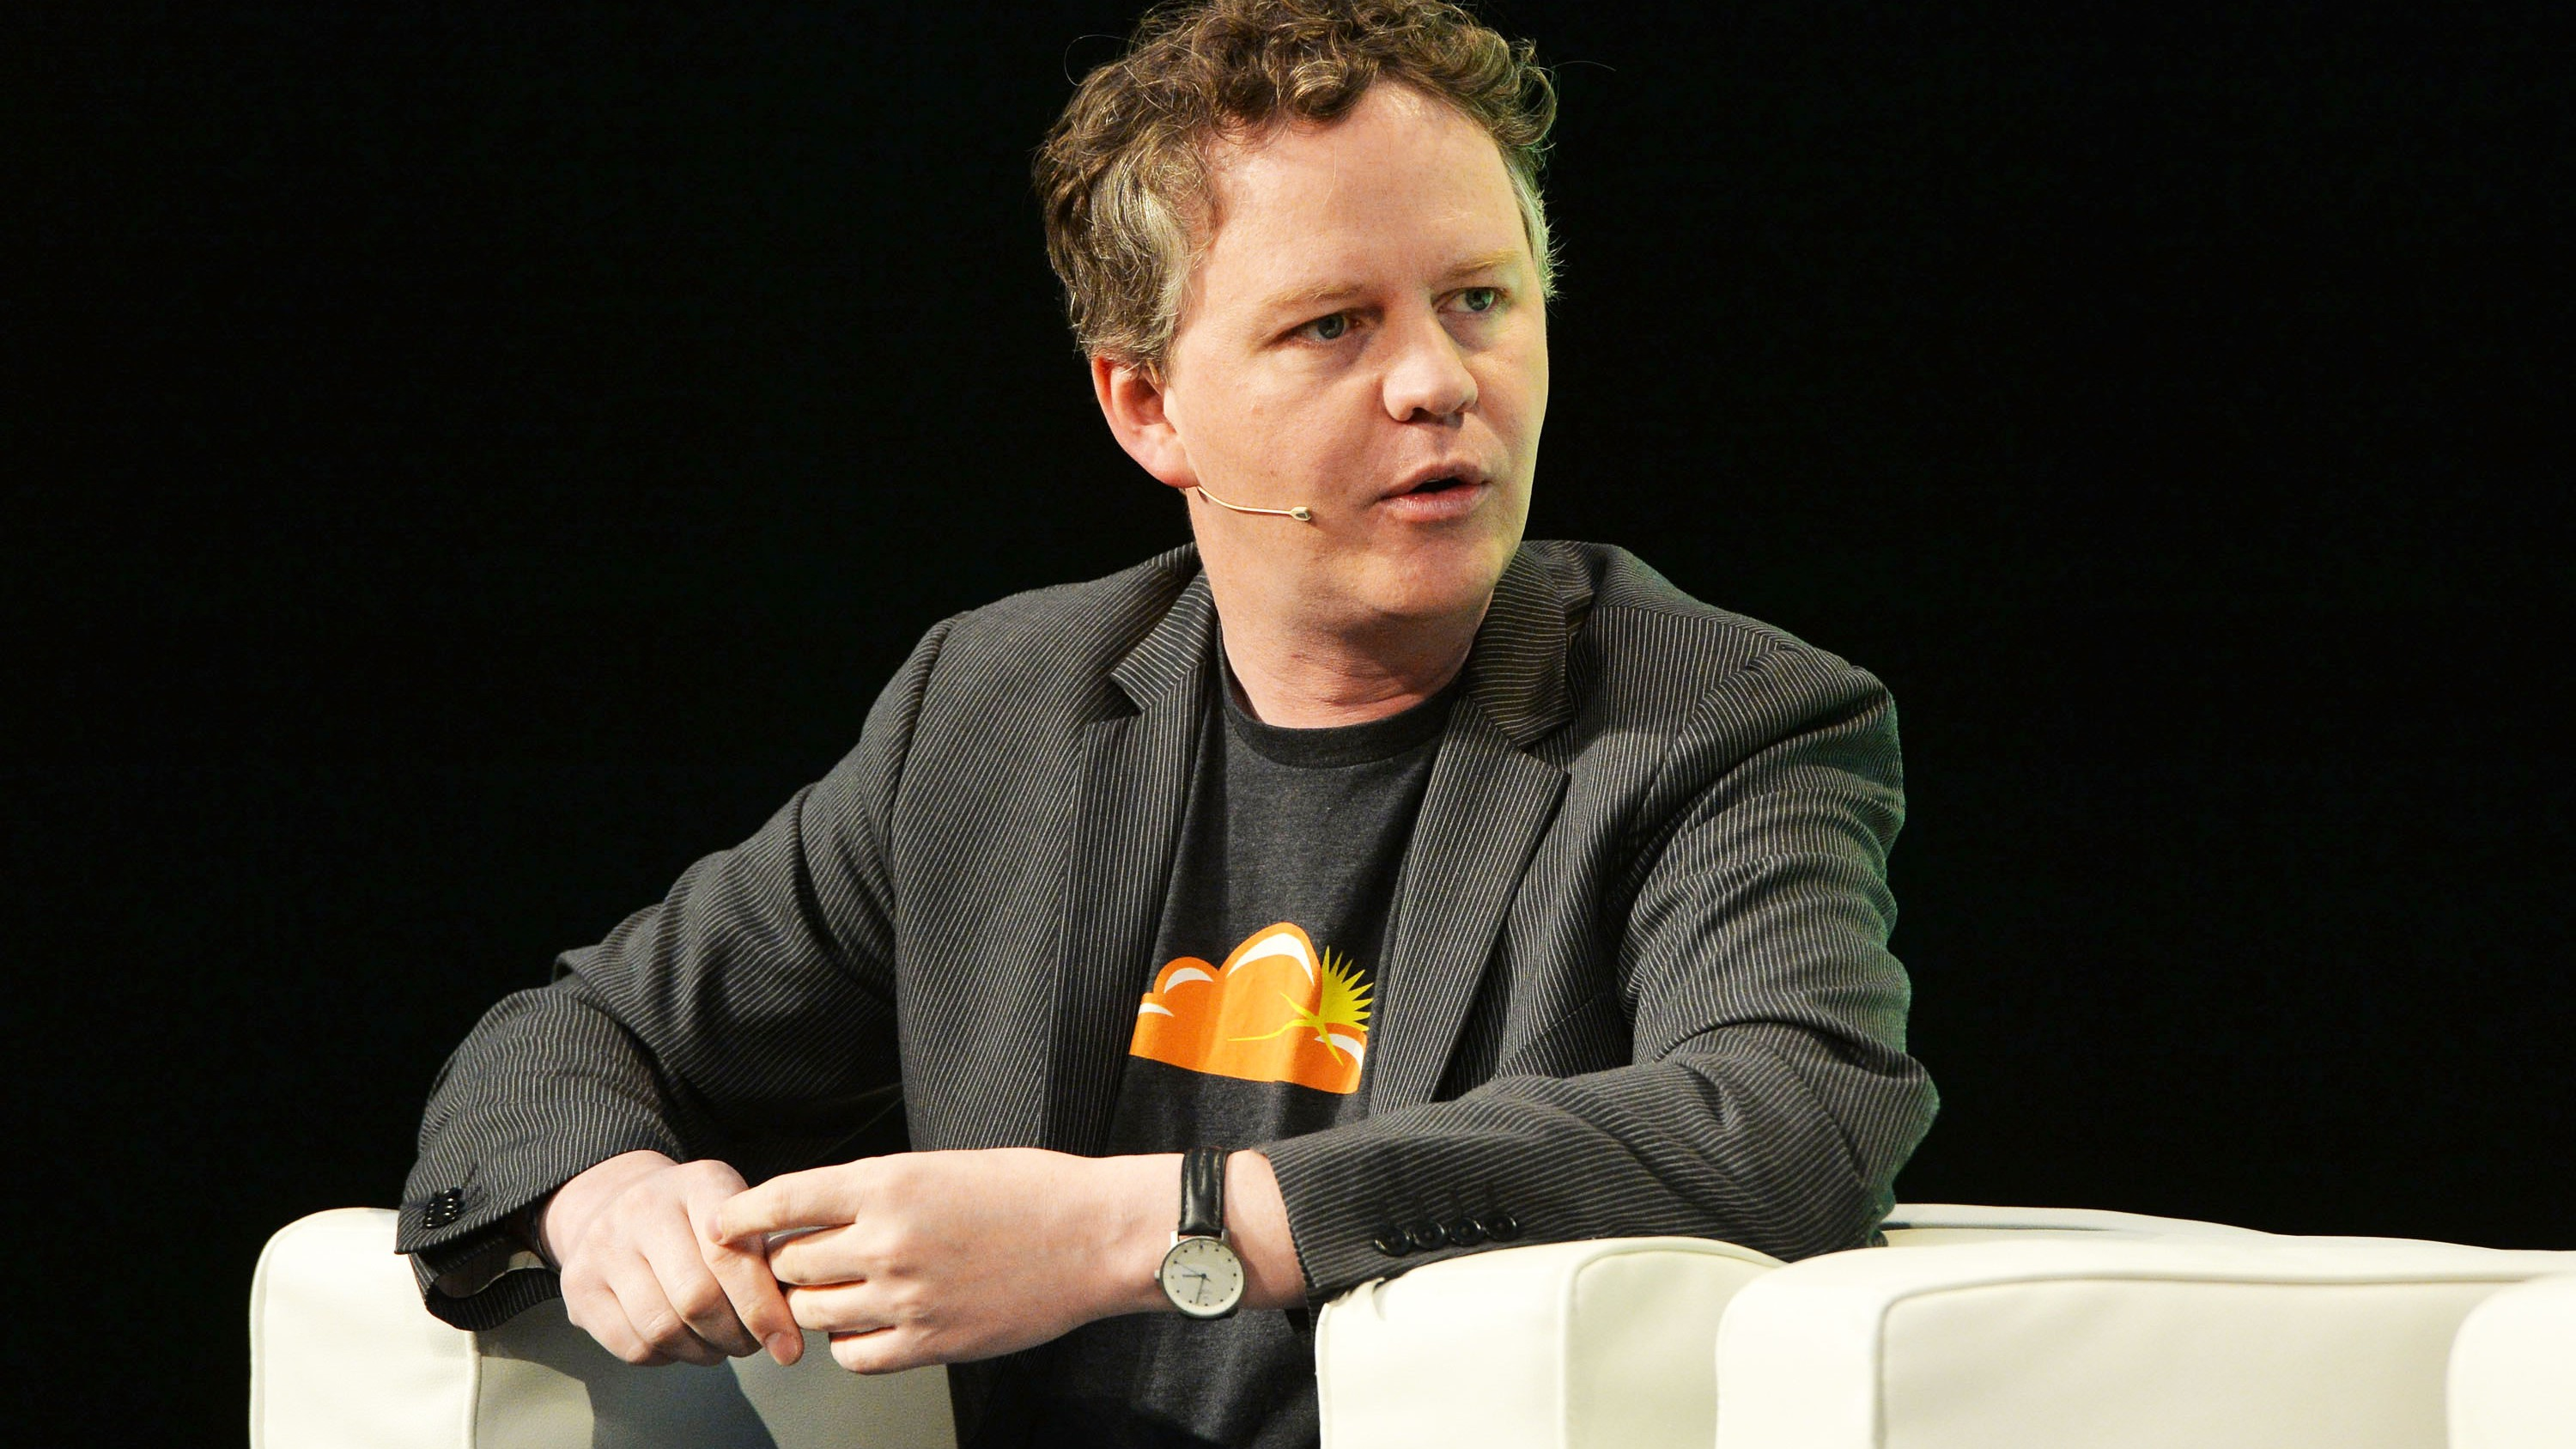 CloudFlare dropping 8chan helps fight hate even if 8chan comes back